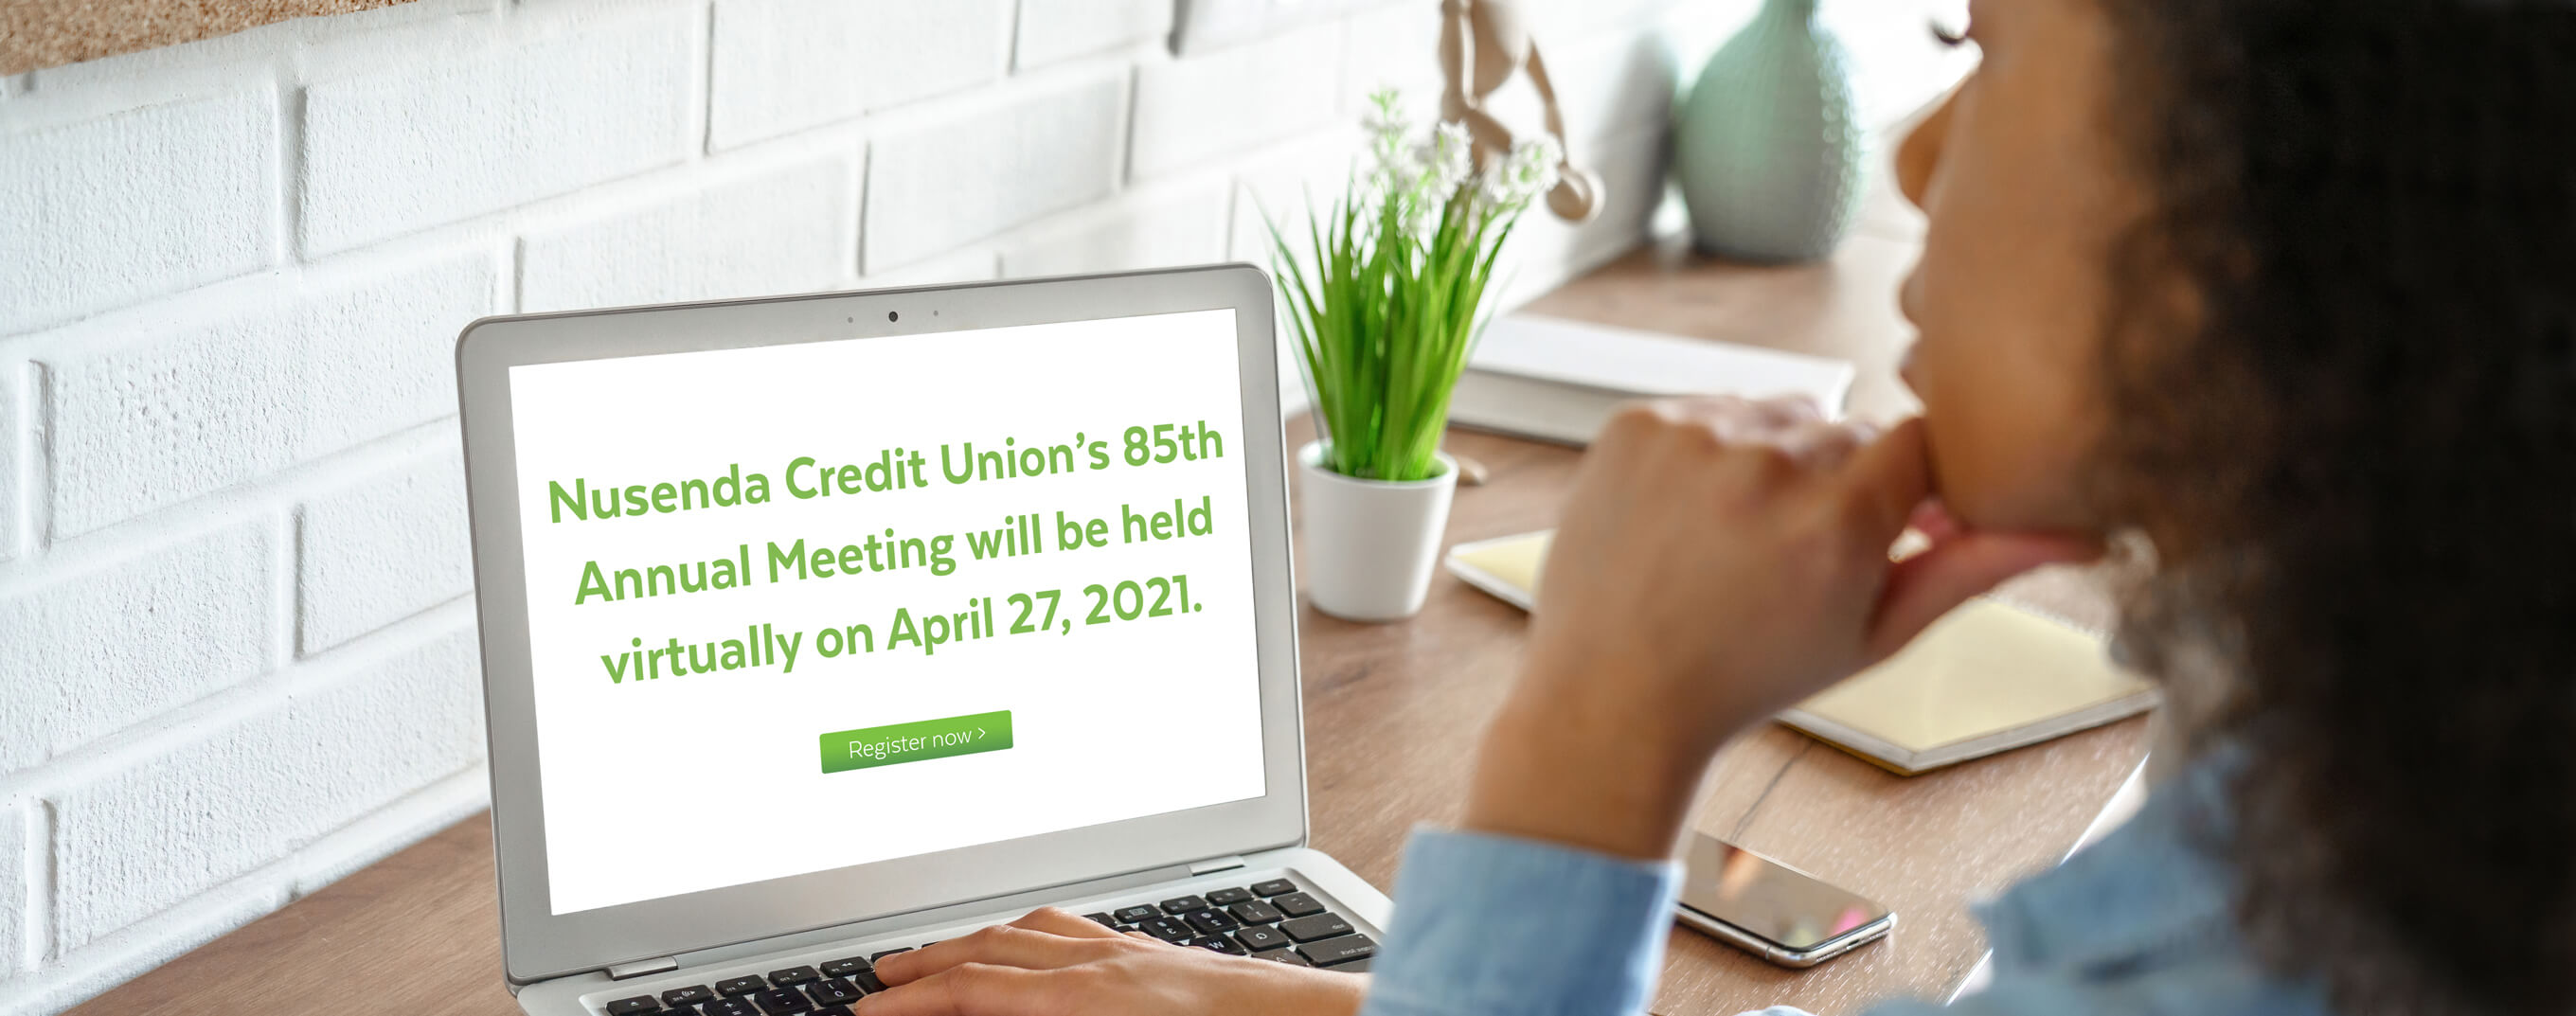 Attend Nusenda Credit Union's 85th annual meeting virtually on April 27, 2021.